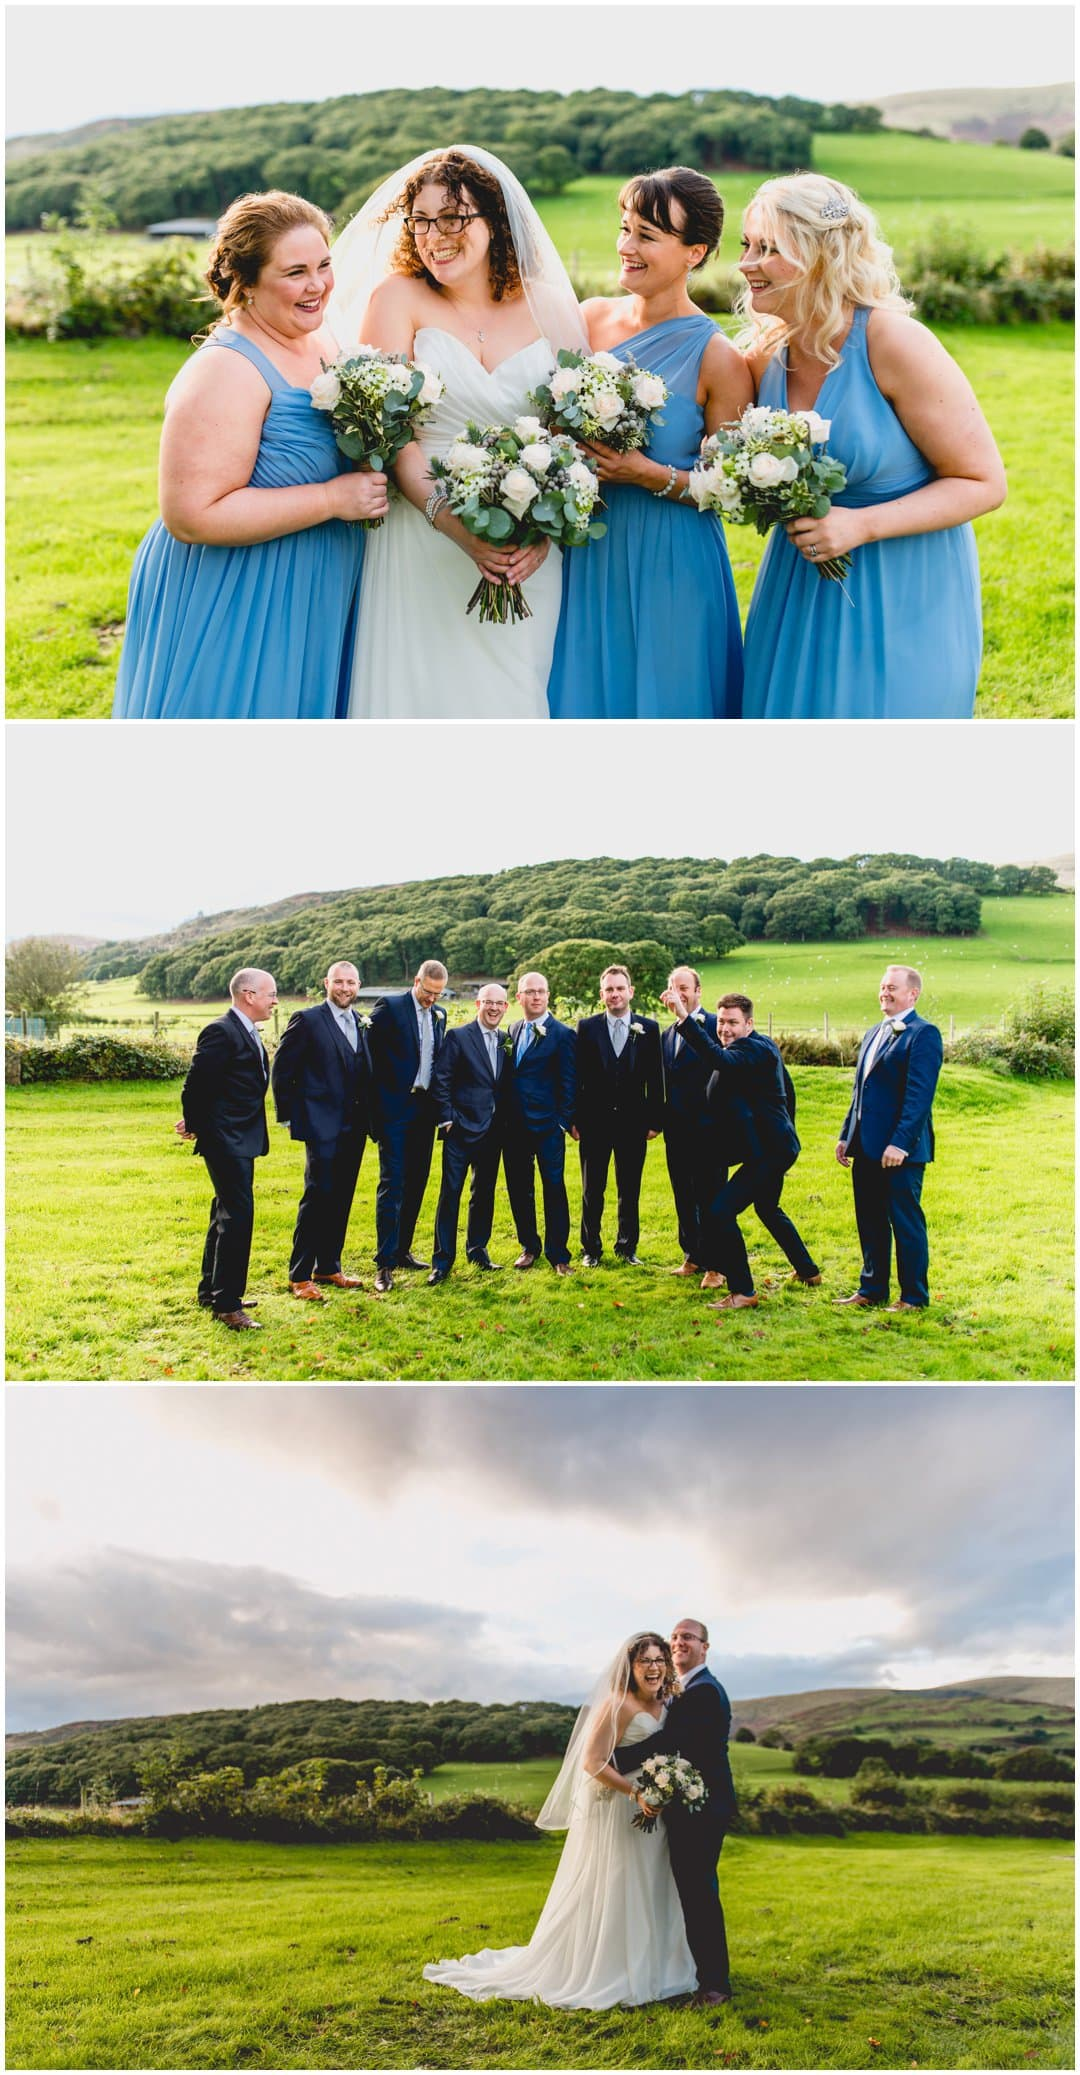 Kath and Tim's wedding in Aberdovey, Wales by West Midlands and Wales Wedding Photographer Lisa Carpenter Photography with photos on the beach and cool, alternative blue details at Lan Yr Afon Riverside Restaurant